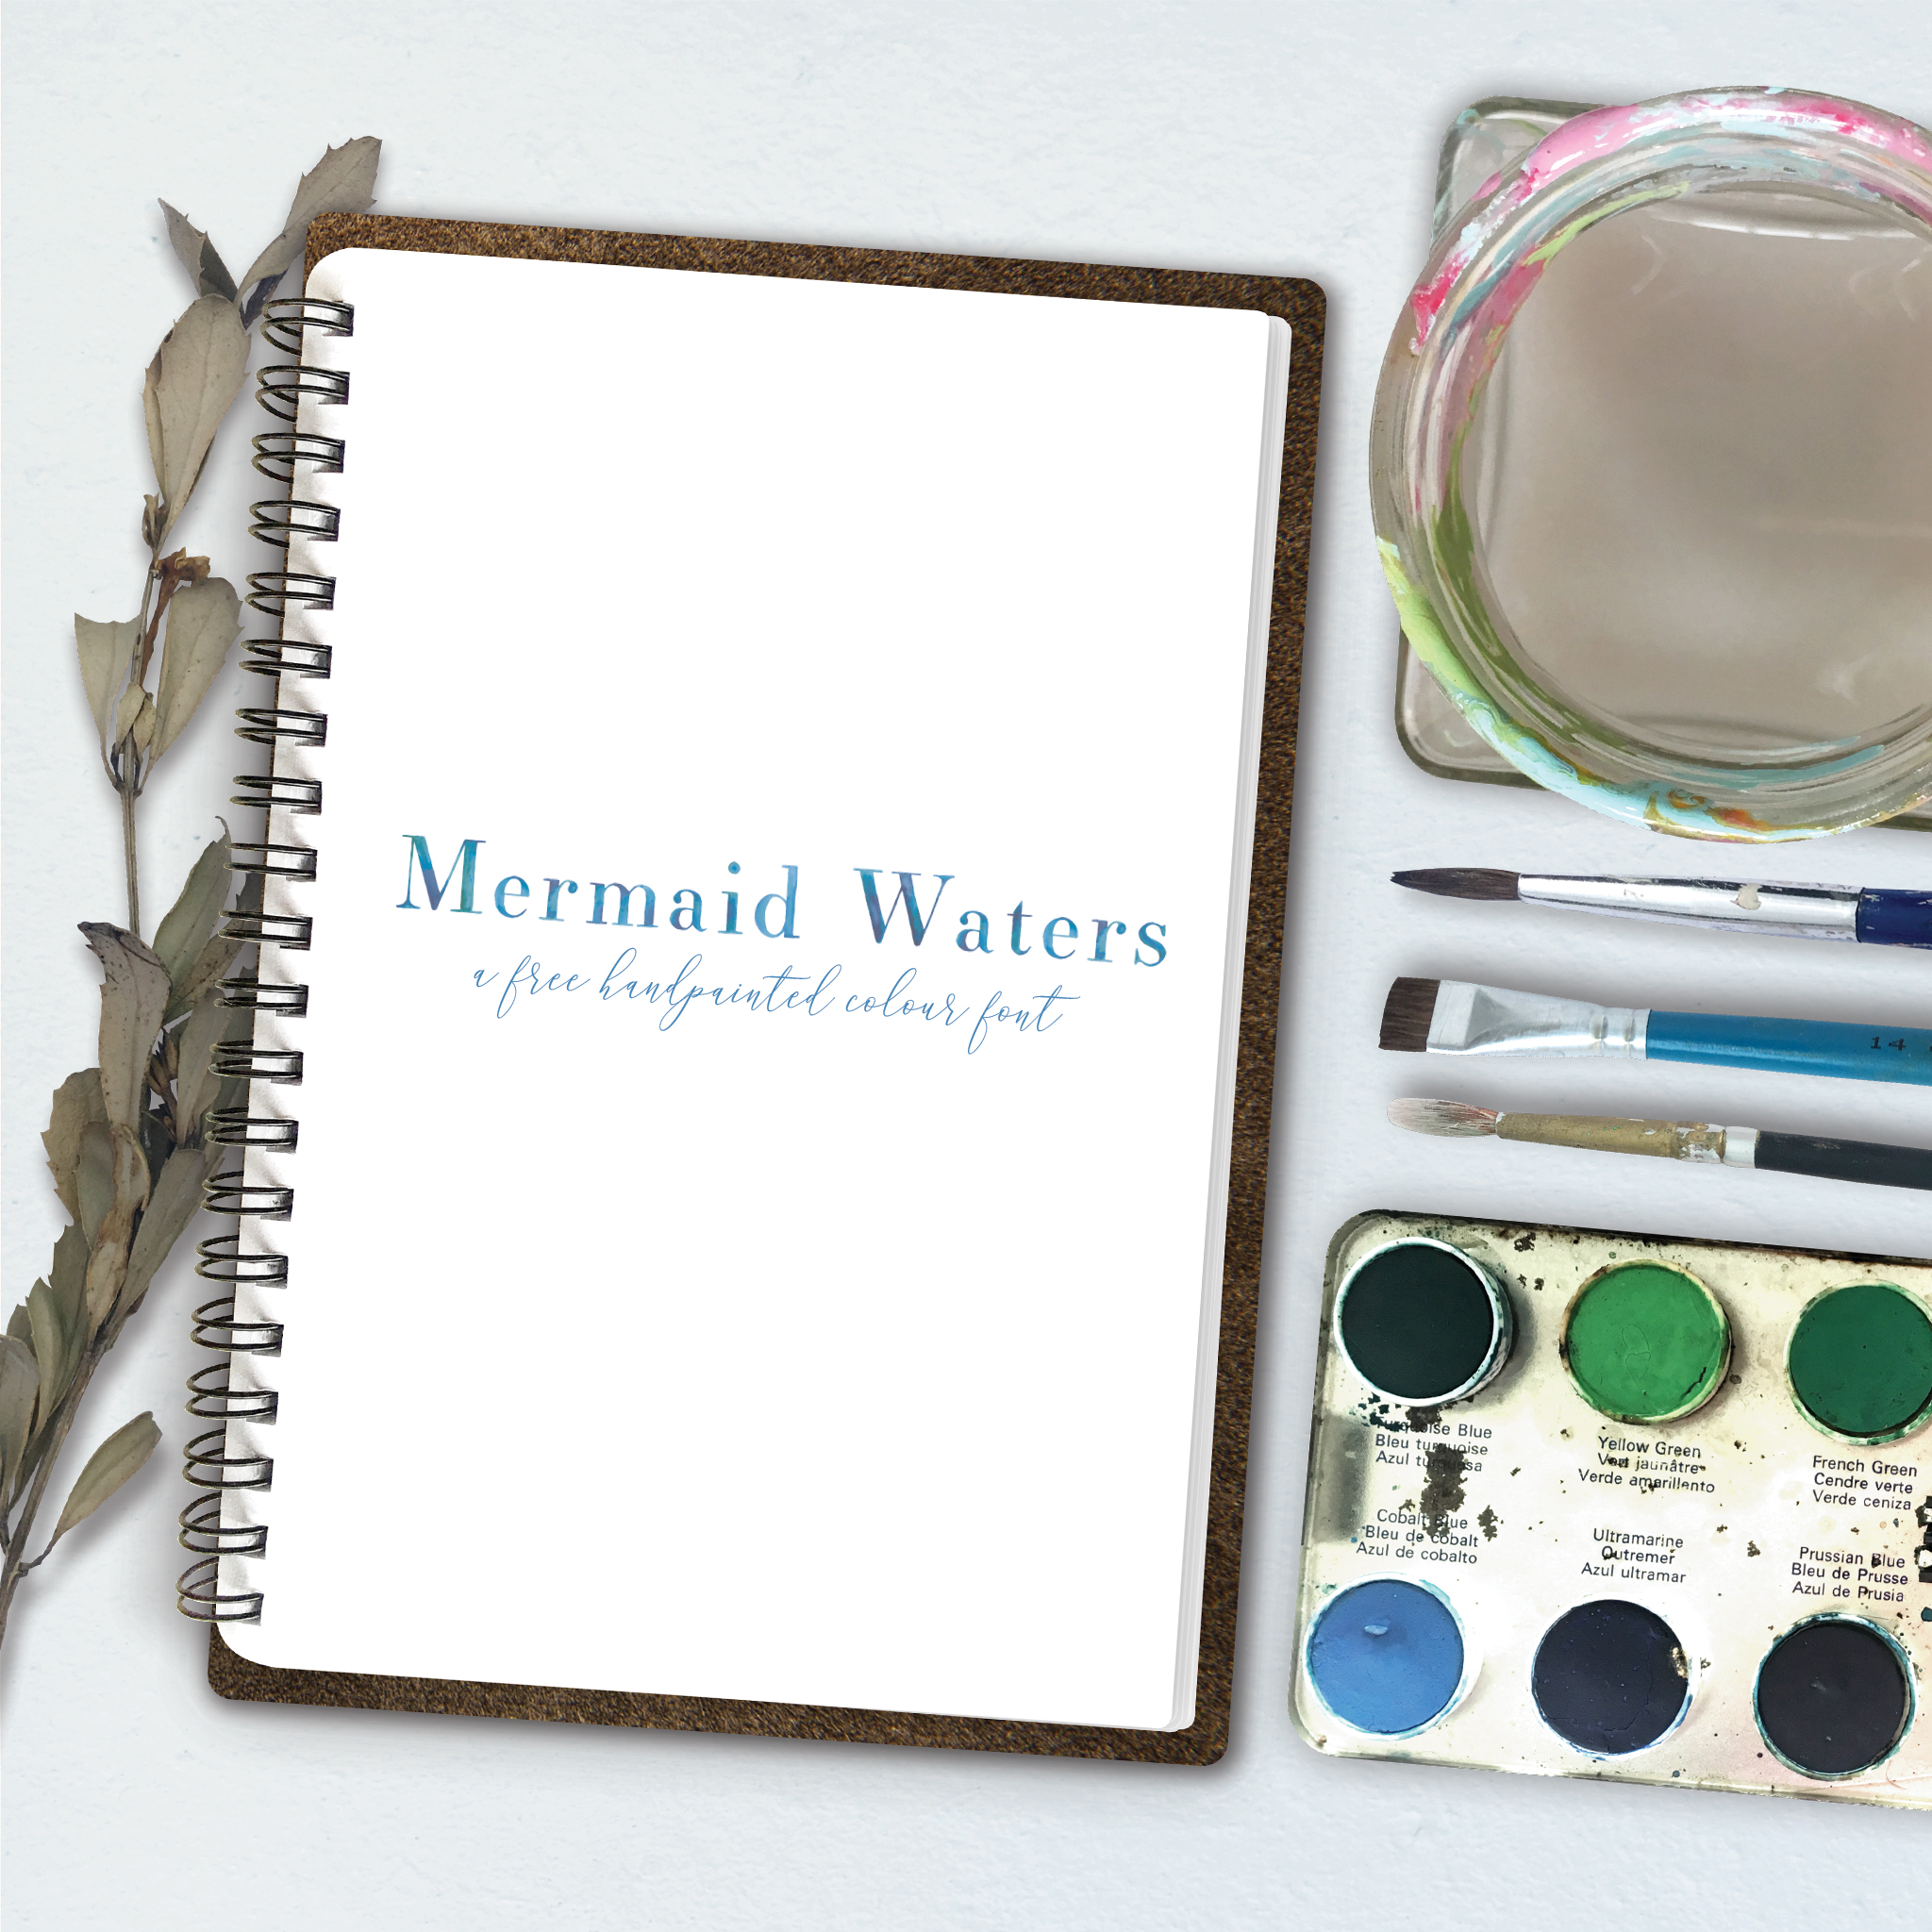 Mermaid Waters 2